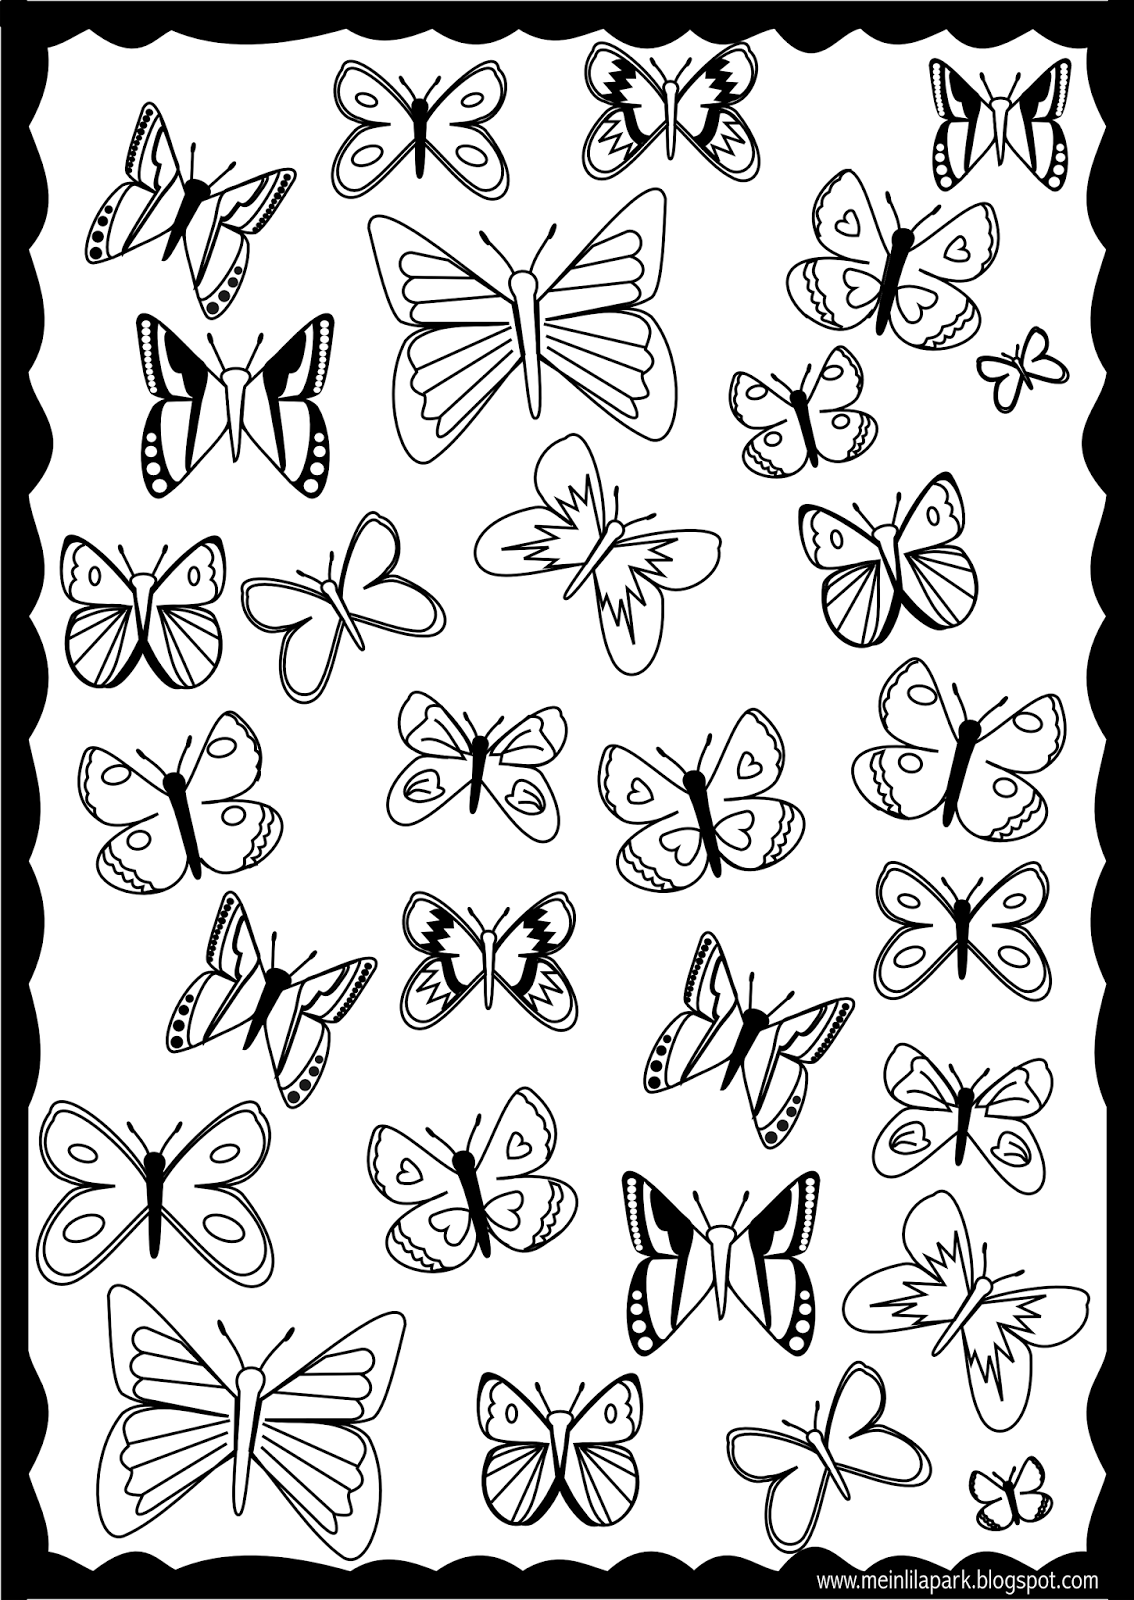 printable butterfly coloring page free printable butterfly coloring pages for kids page butterfly printable coloring